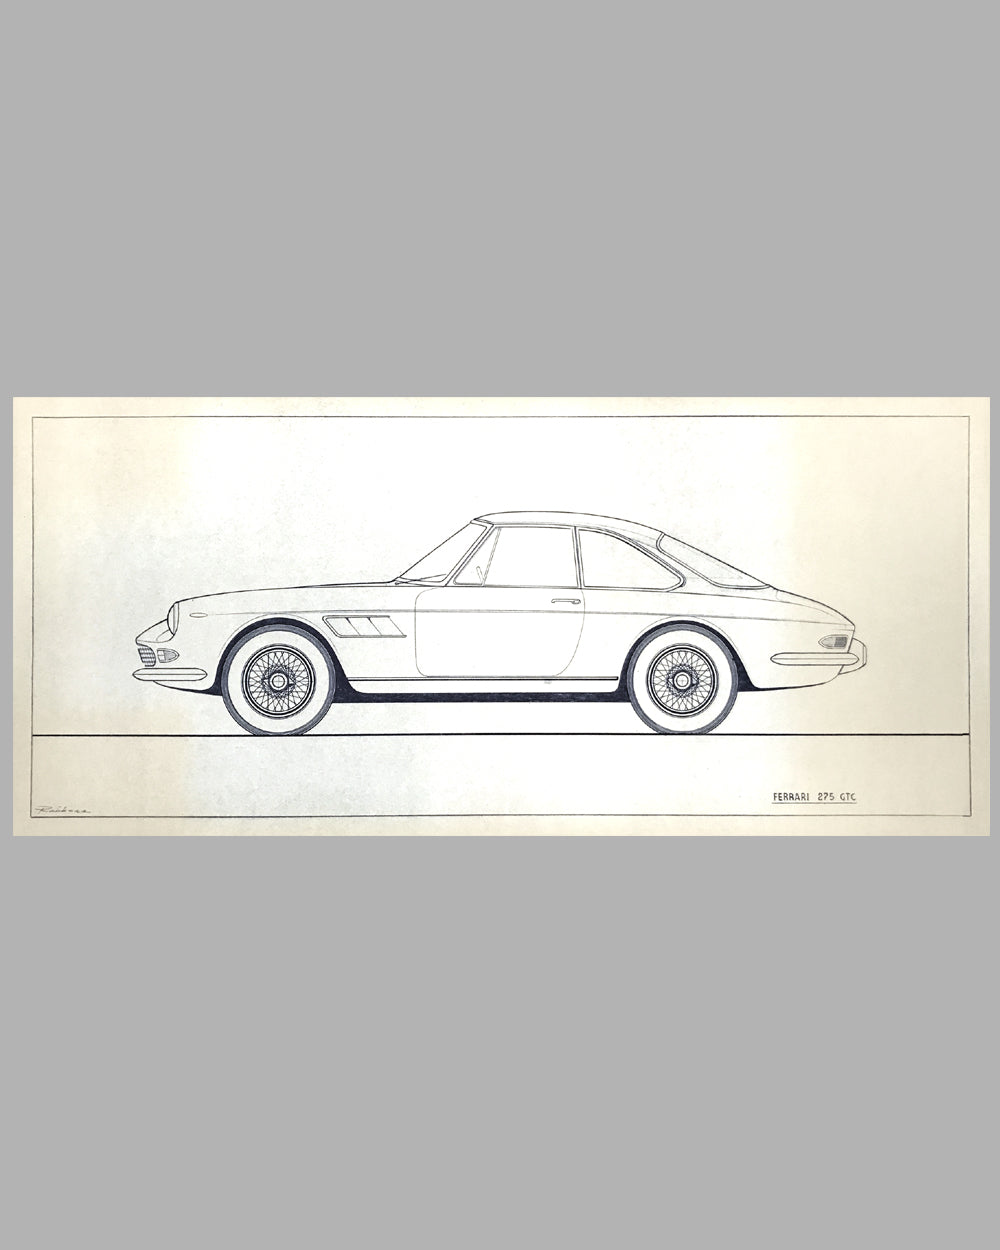 Ferrari 275 GTC original factory blueprint